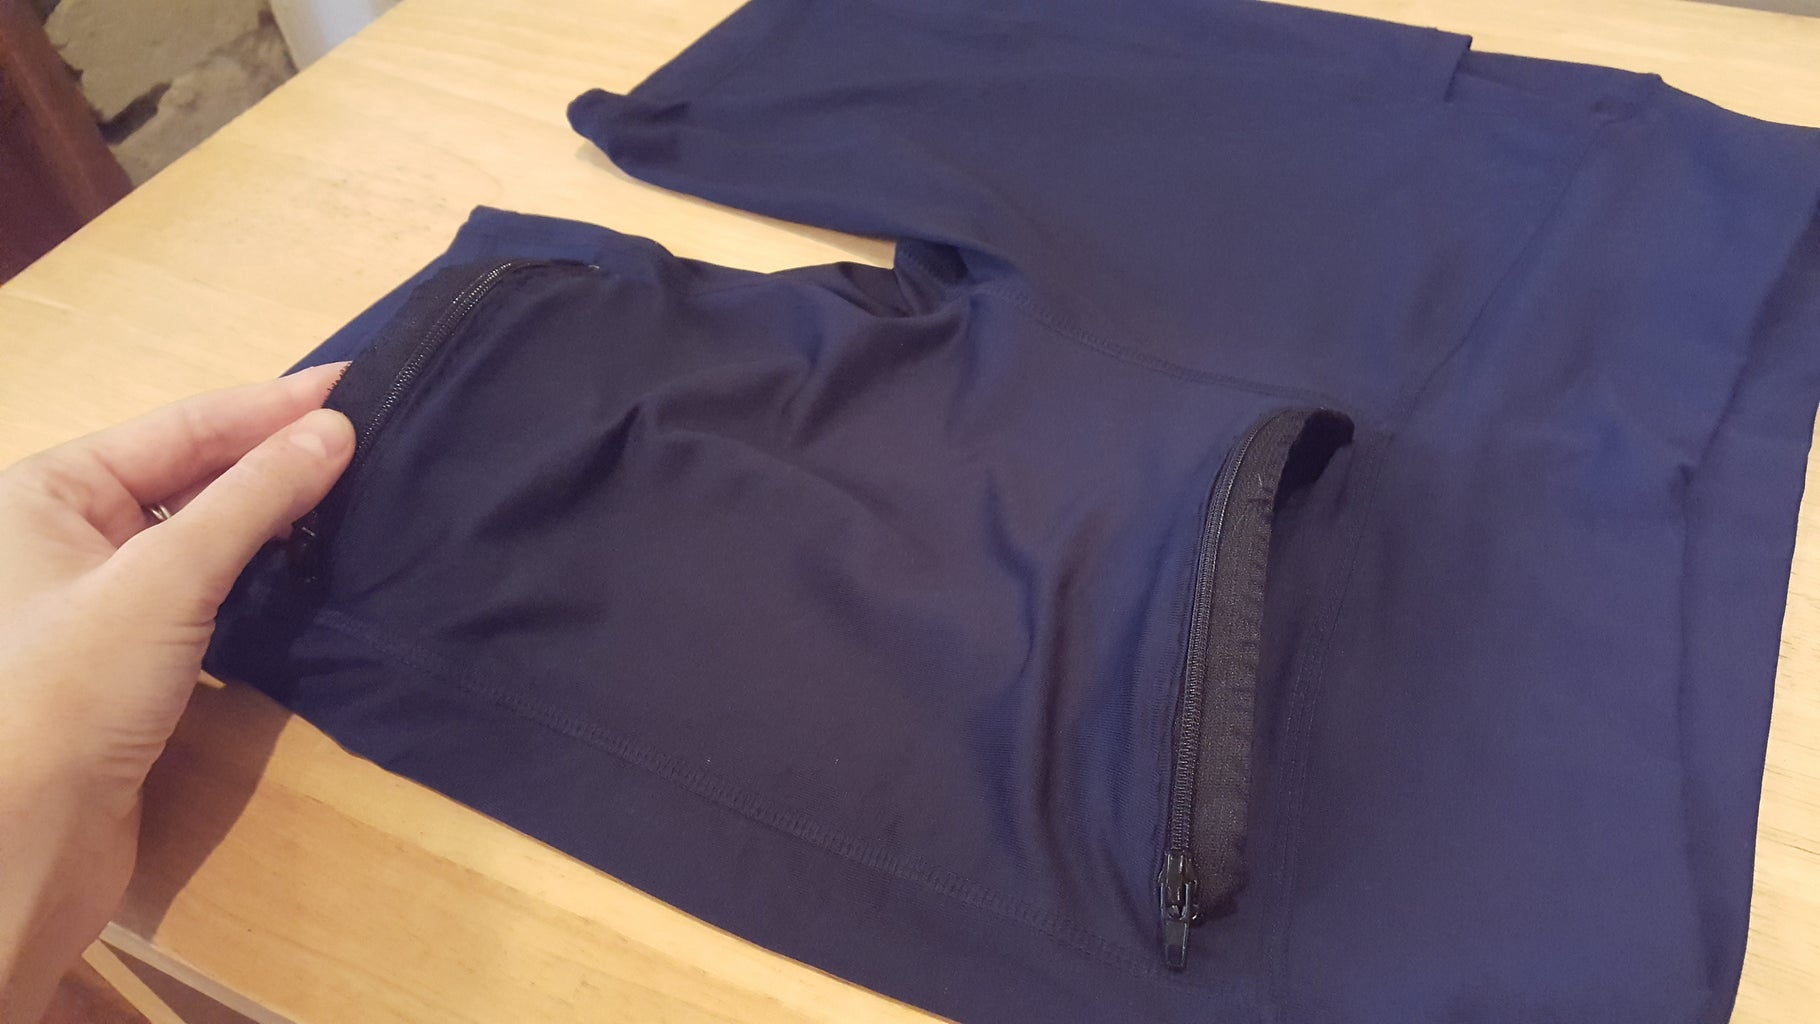 Line Up the Bottom Zipper and Stitch It Into Place